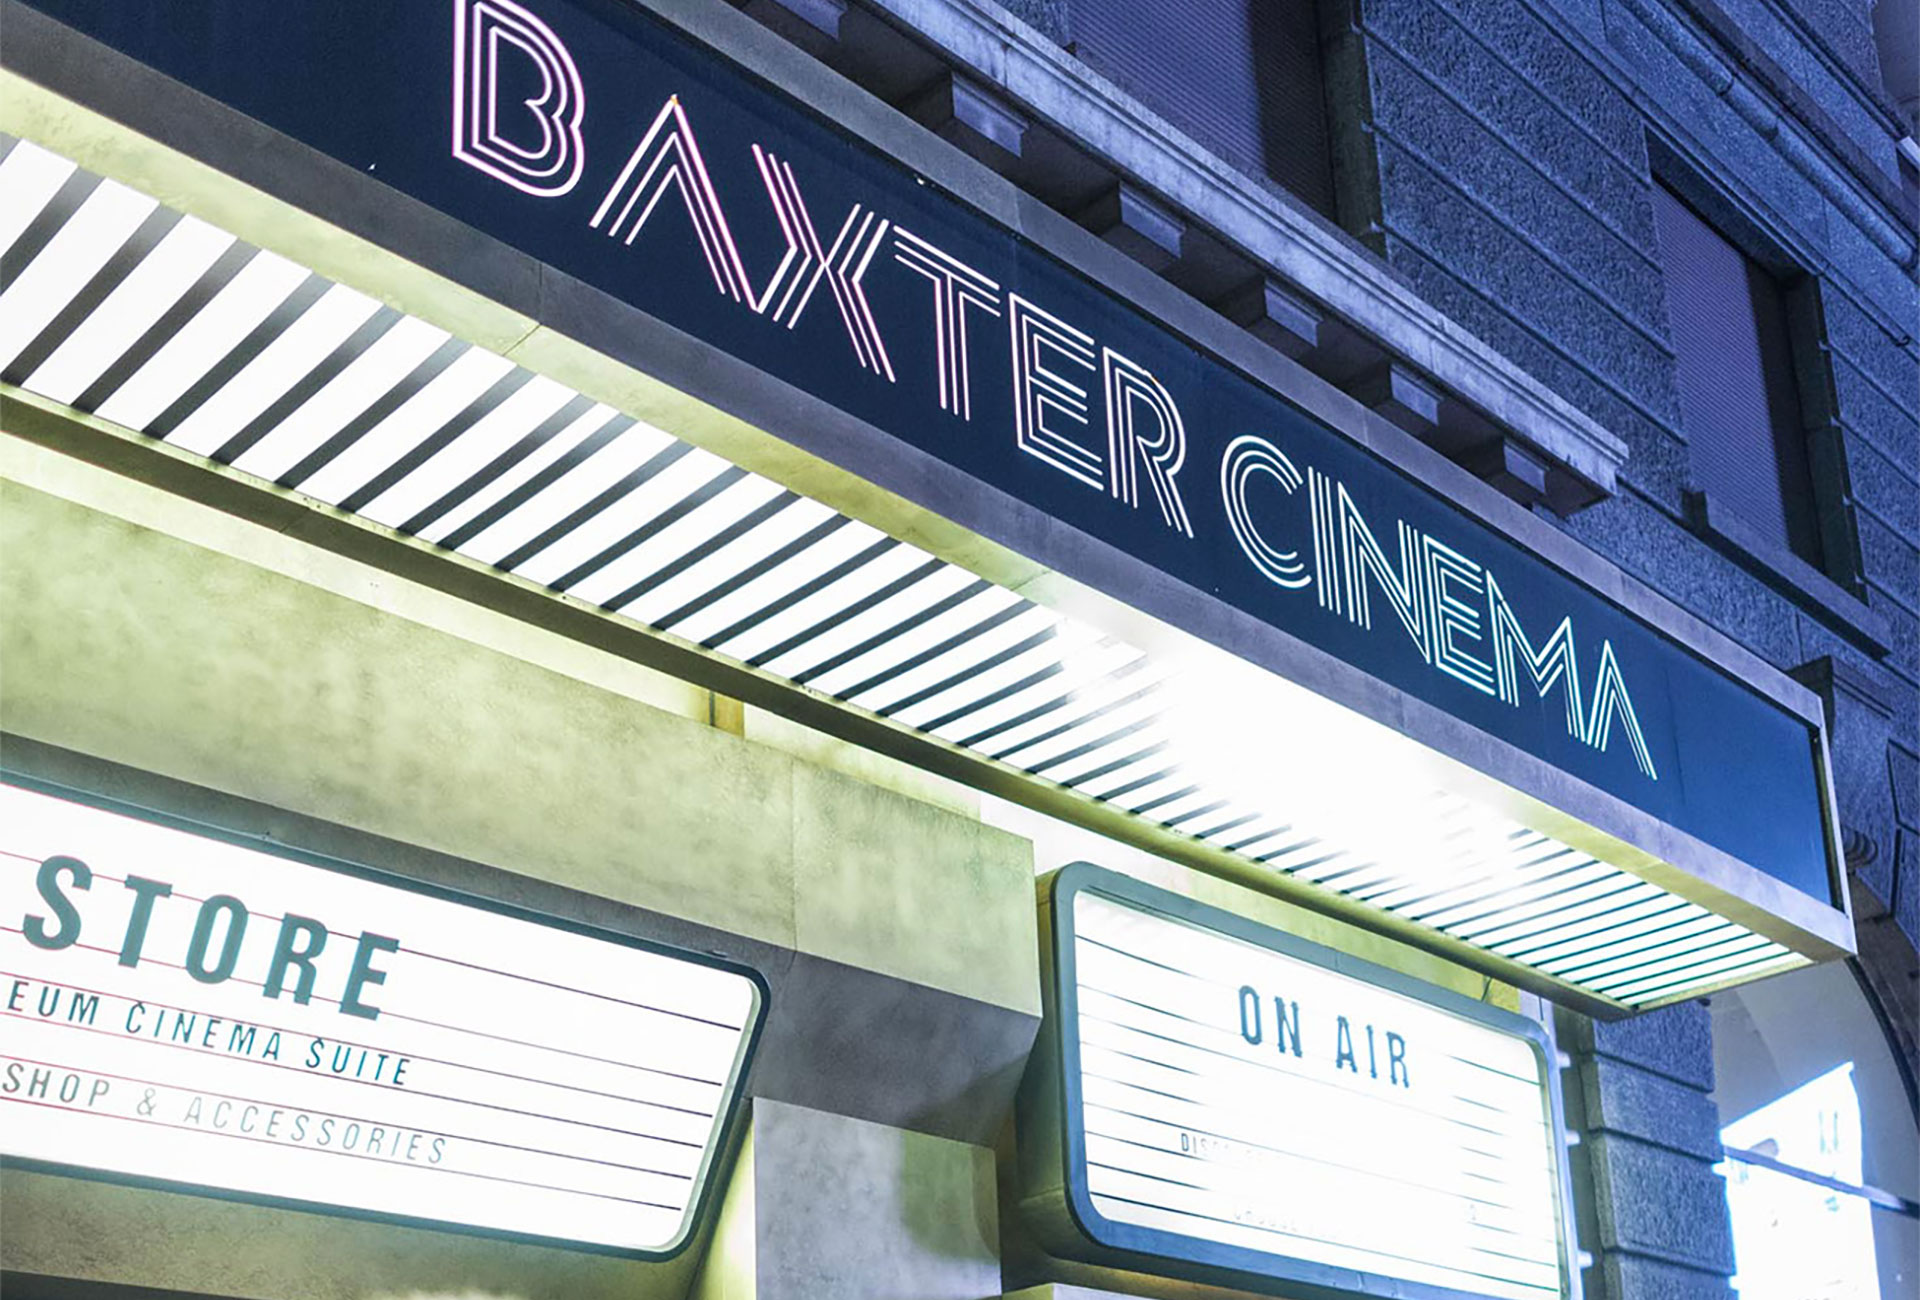 BAXTER CINEMA | PARTY FUORISALONE 2018